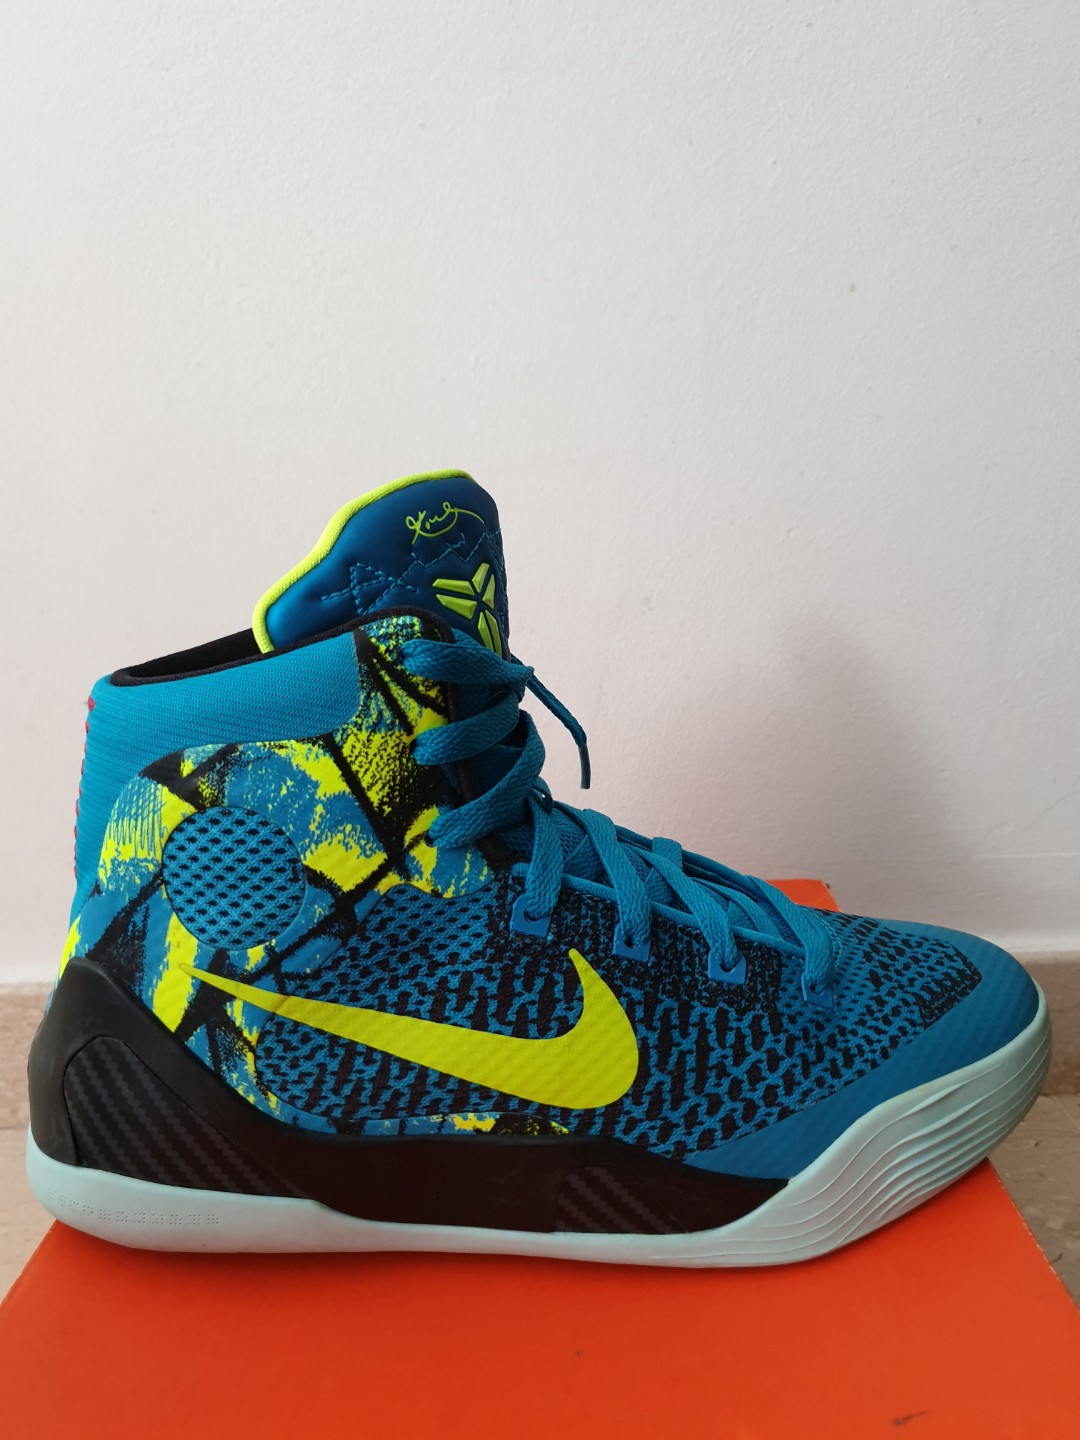 on sale d9d98 7cdc4 Nike Kobe IX Elite (GS) negotiable